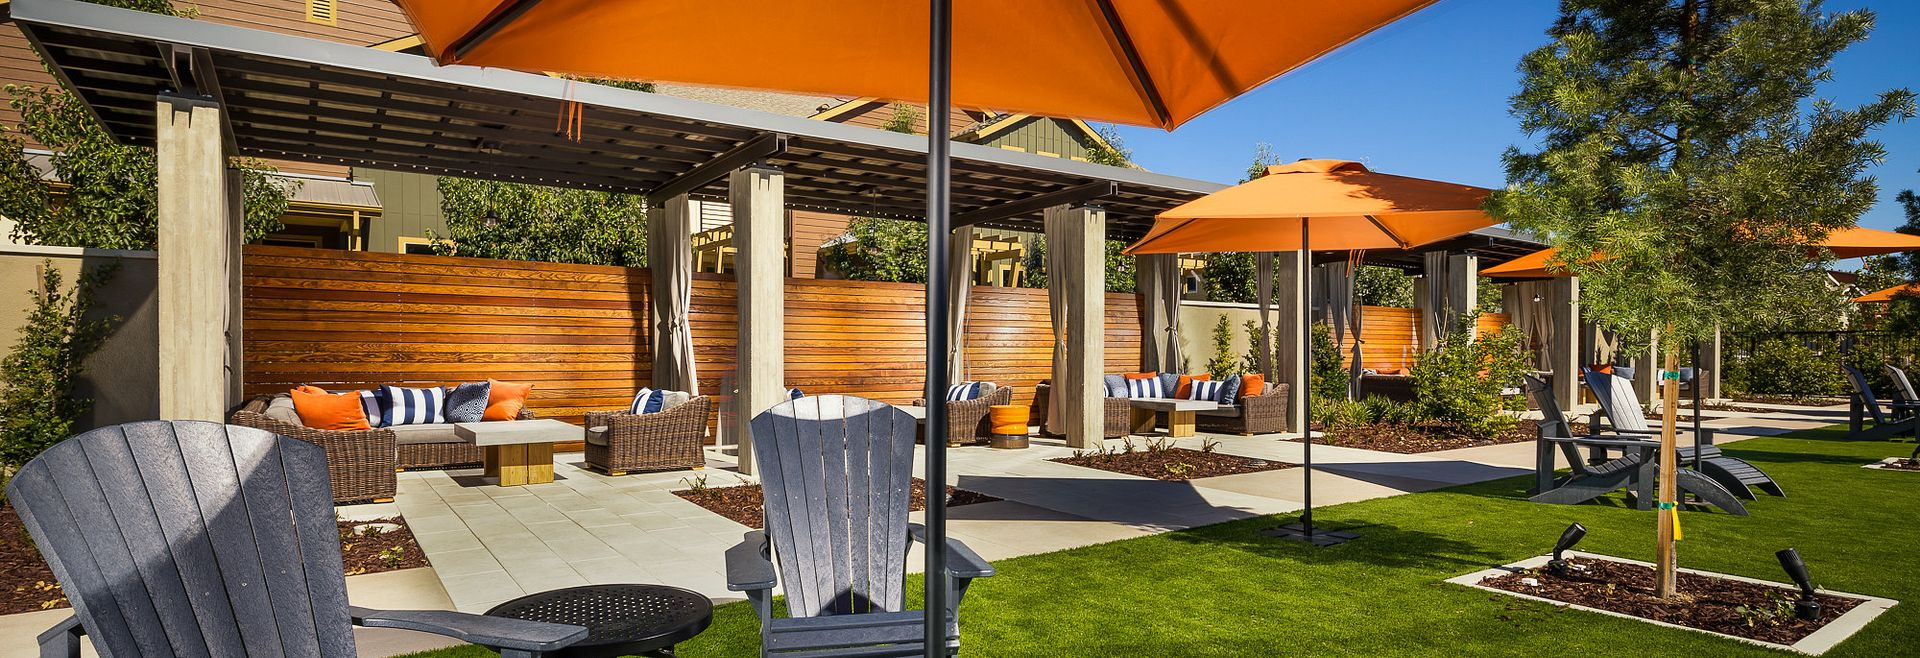 Sage Clubhouse Lawn Chair with Umbrella and Outdoor Cabanas